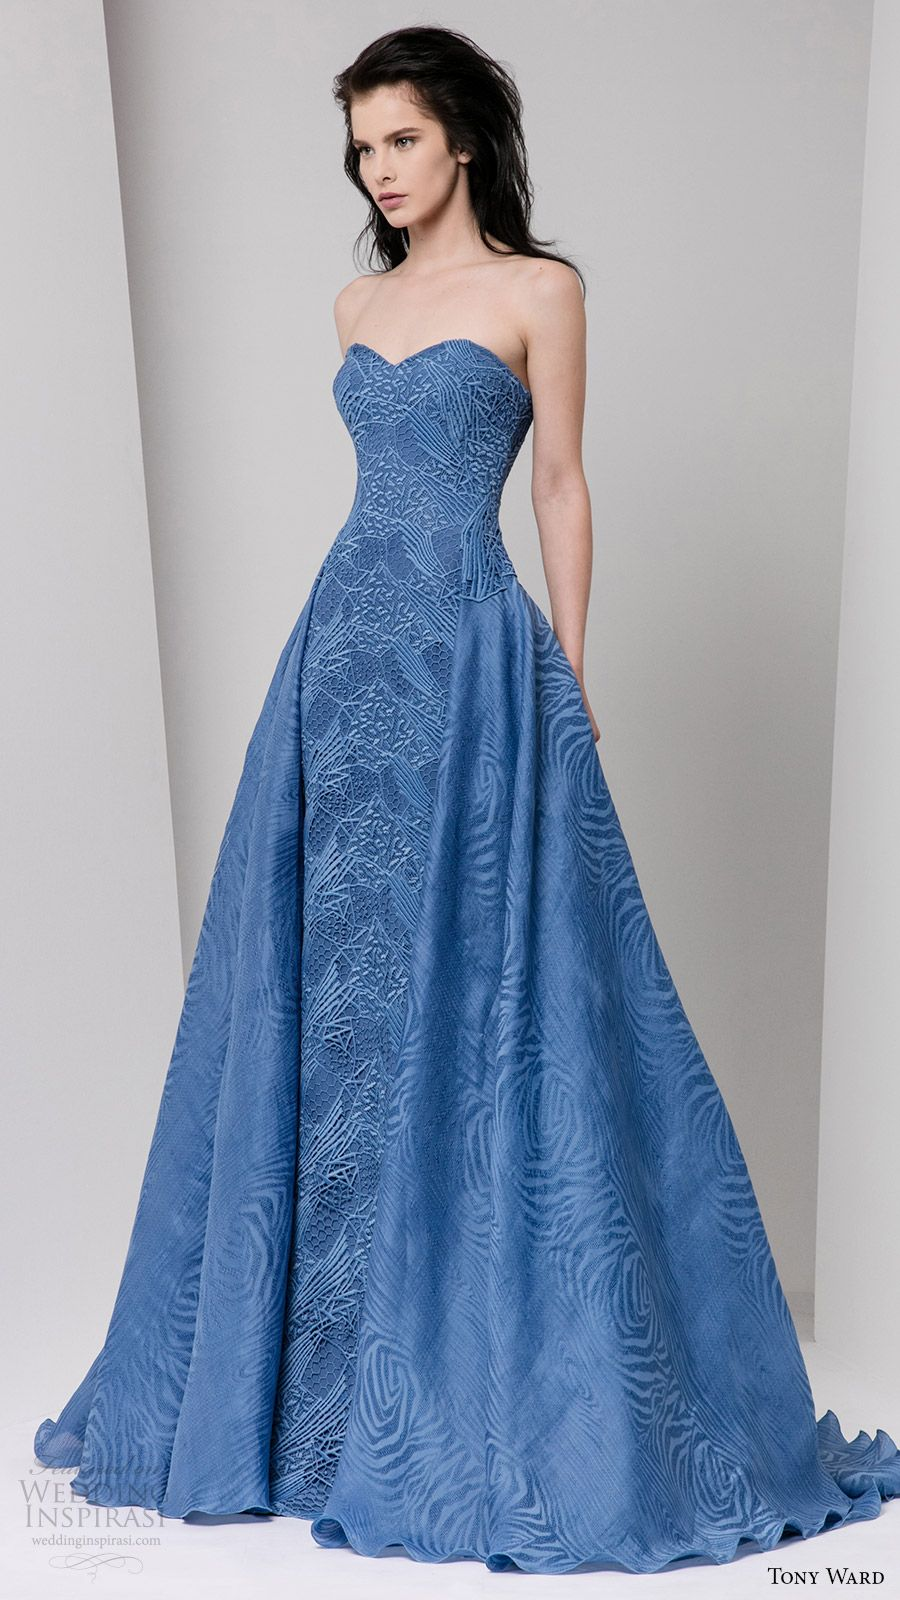 Wedding Blue Gown tony ward fall 2016 ready to wear dresses blue gown a line and rtw strapless sweetheart overskirt